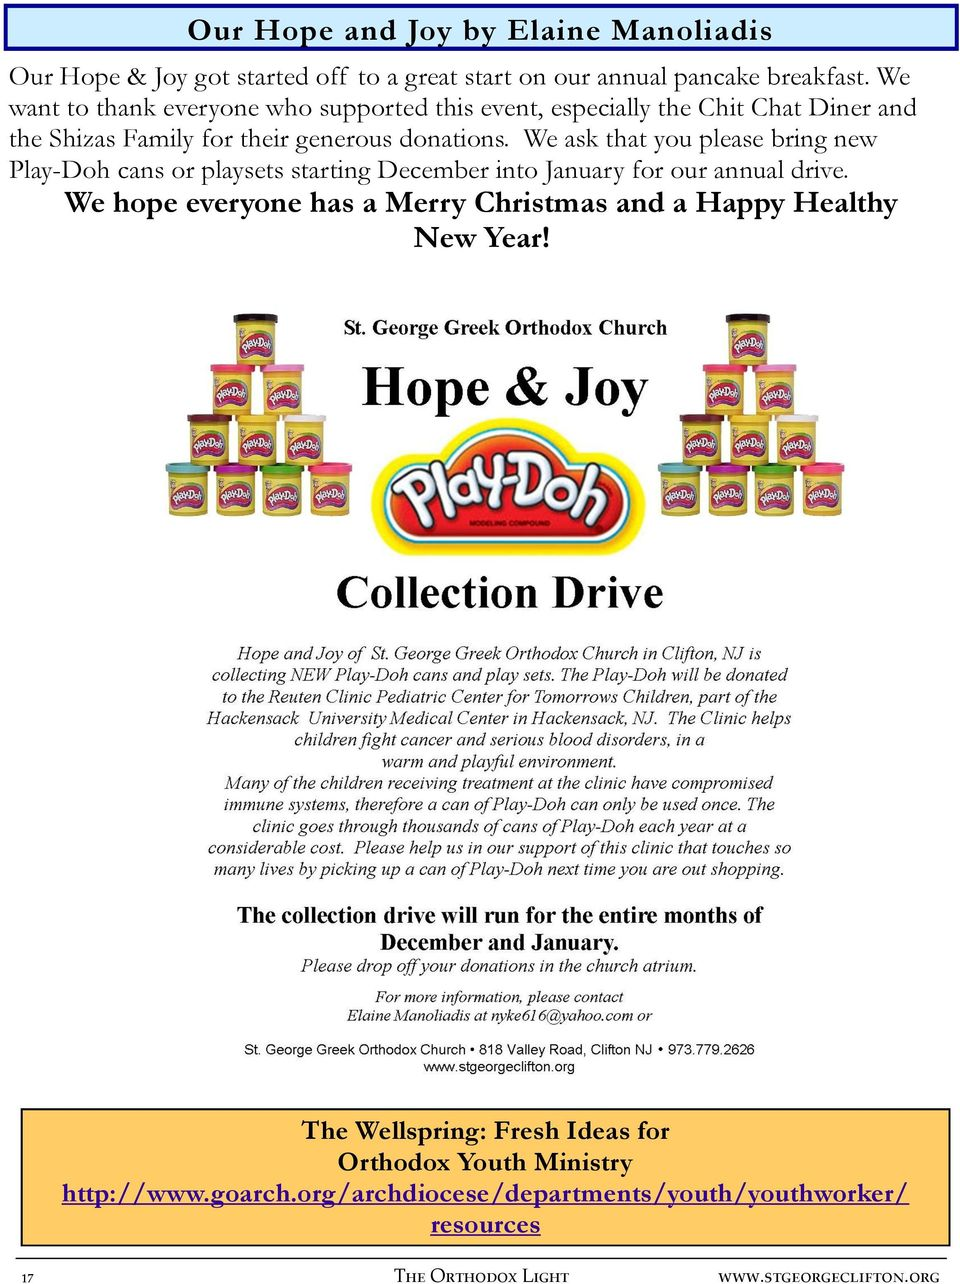 We ask that you please bring new Play-Doh cans or playsets starting December into January for our annual drive.